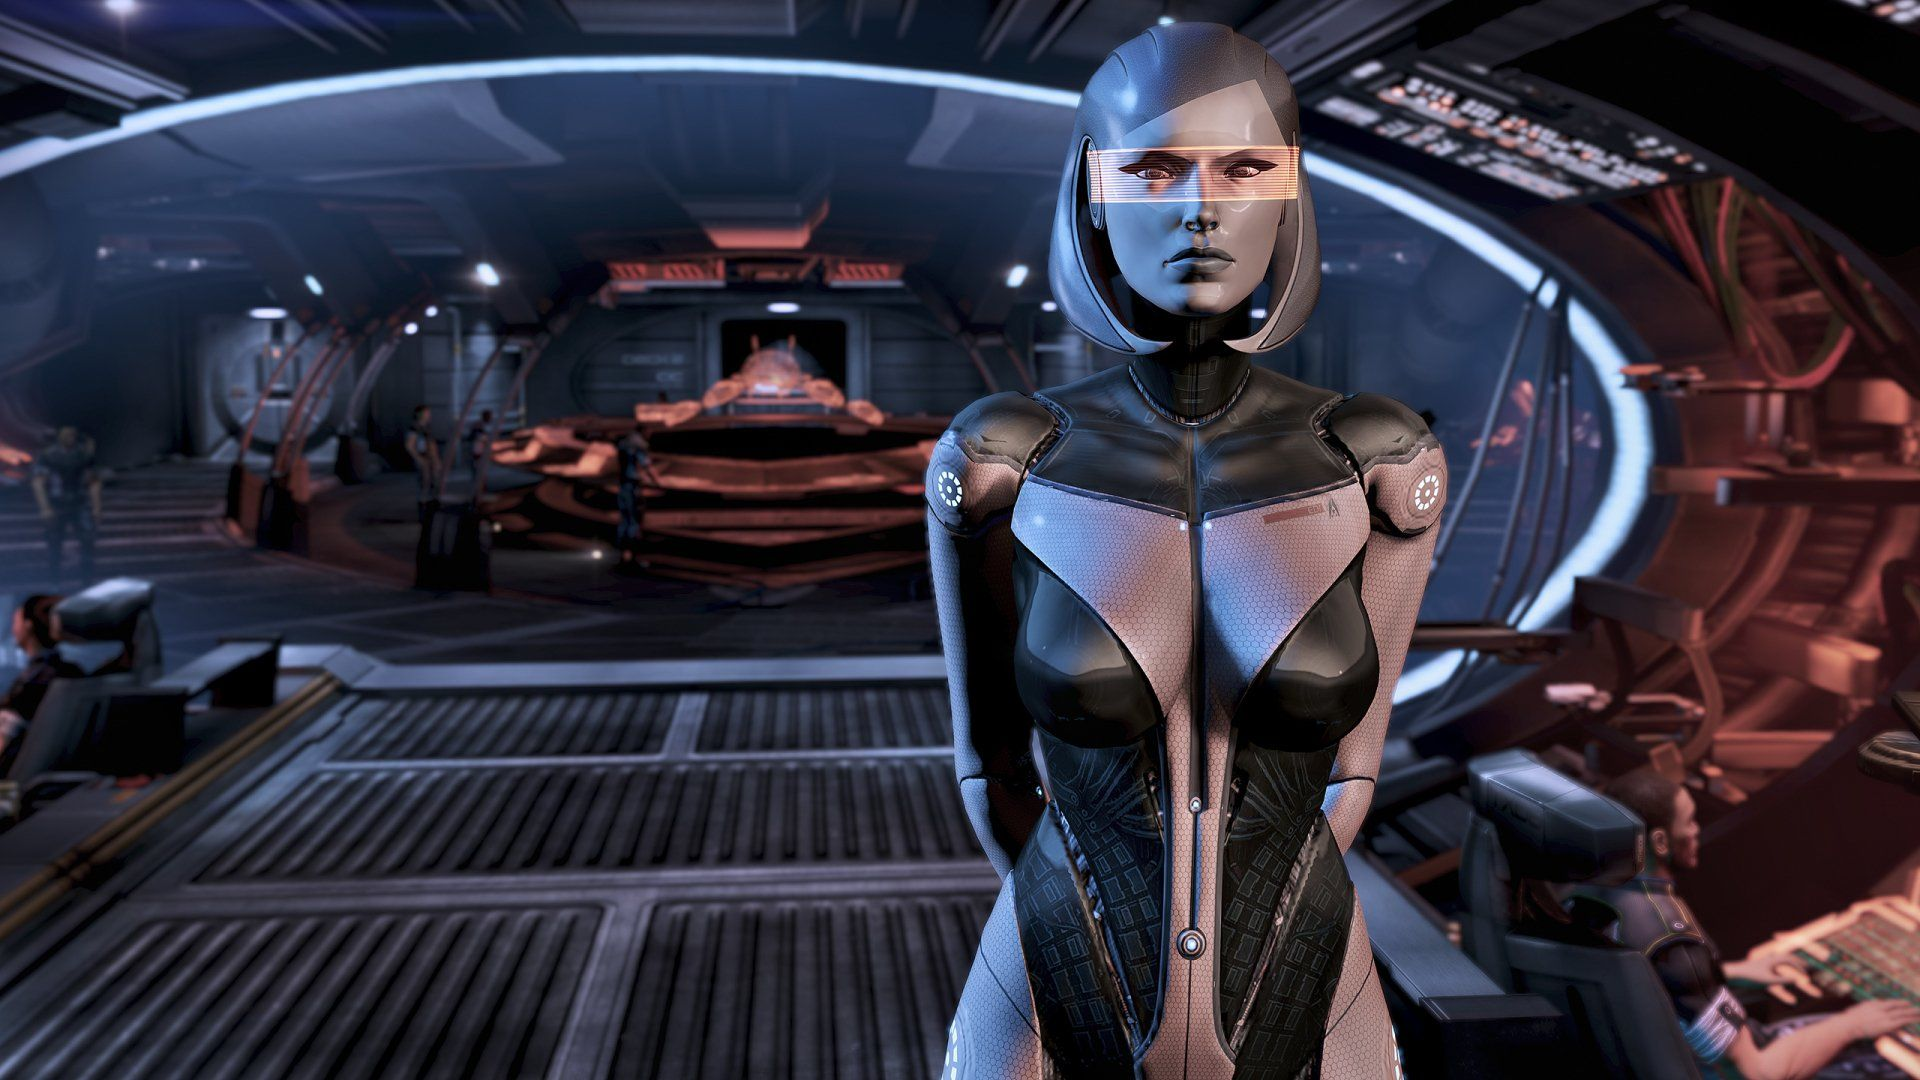 2560x1440 Mass Effect 3 Wallpaper Background Image. View, download,  comment, and rate - Wallpaper Abyss | Mass effect, Edi mass effect, Mass  effect universe